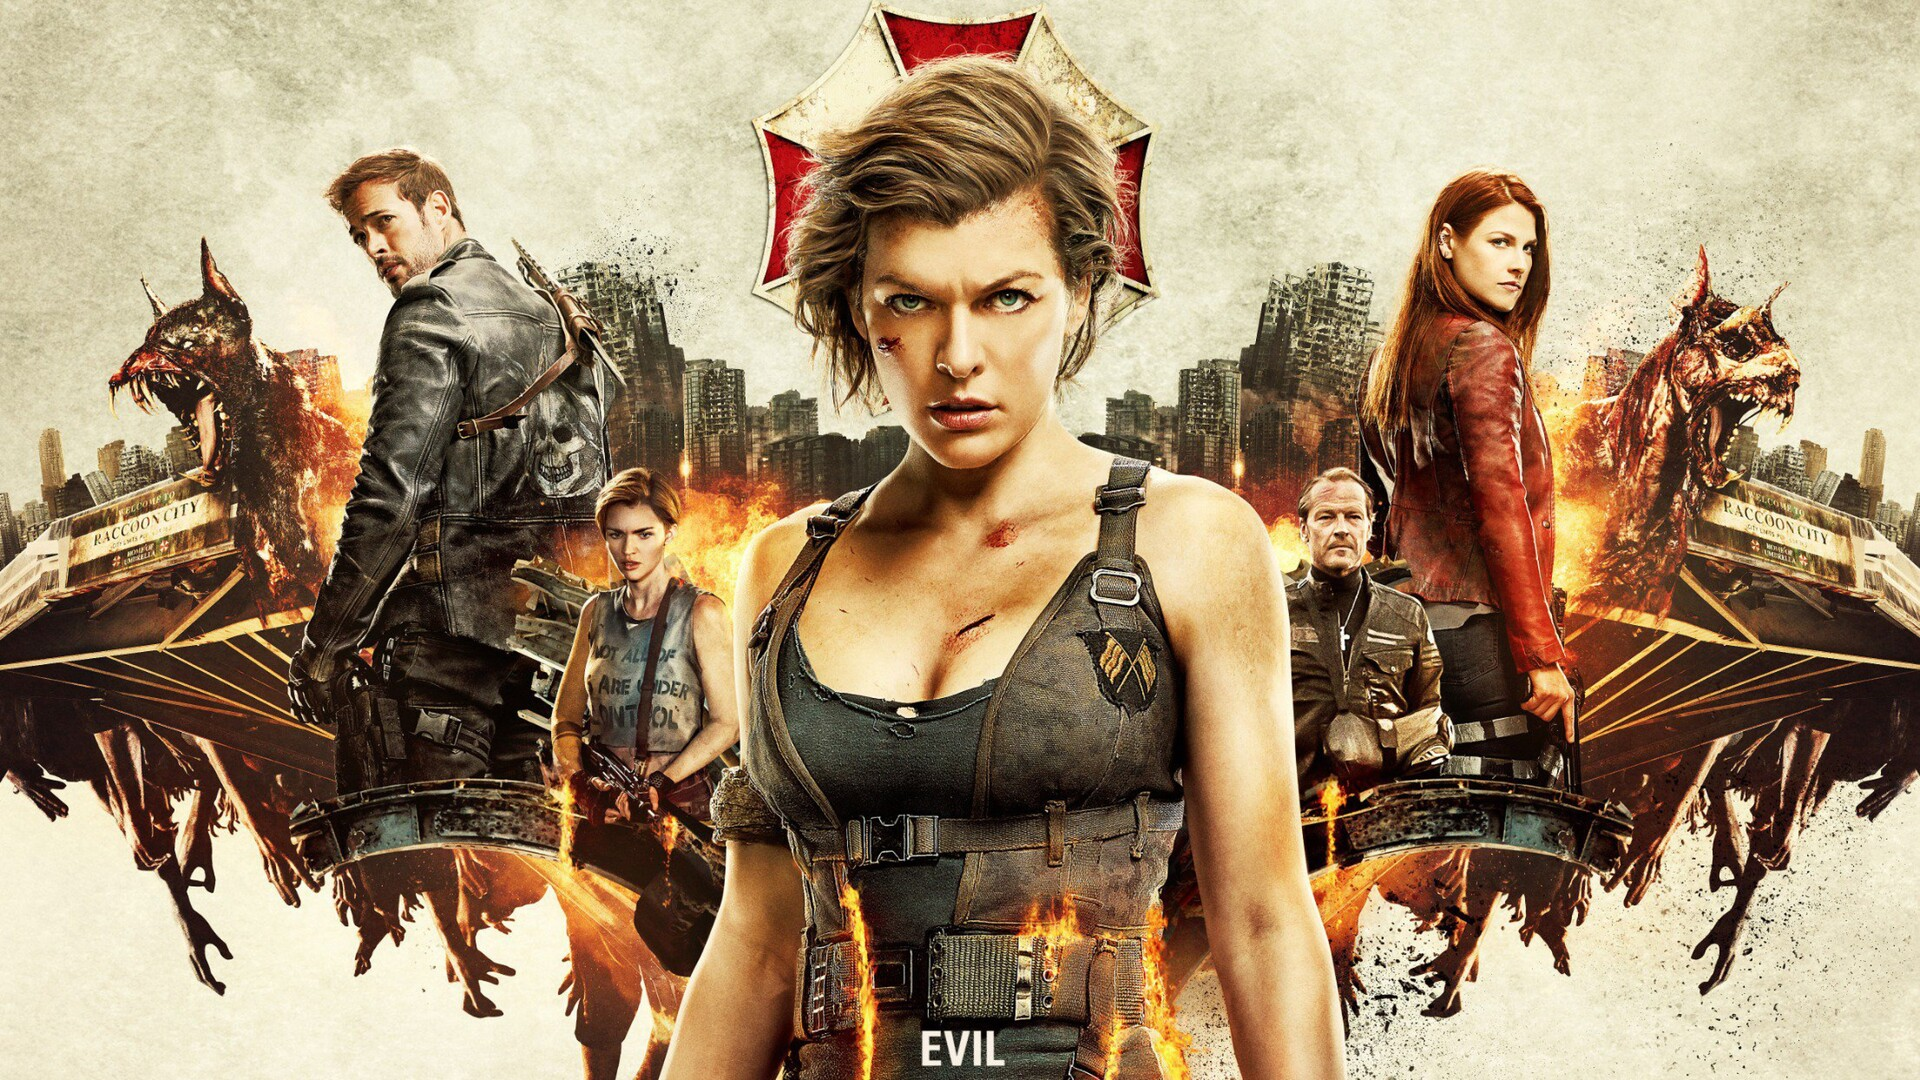 1920x1080 resident evil the final chapter 4k 2016 movie laptop full hd 1080p hd 4k wallpapers - Resident evil final chapter 4k ...